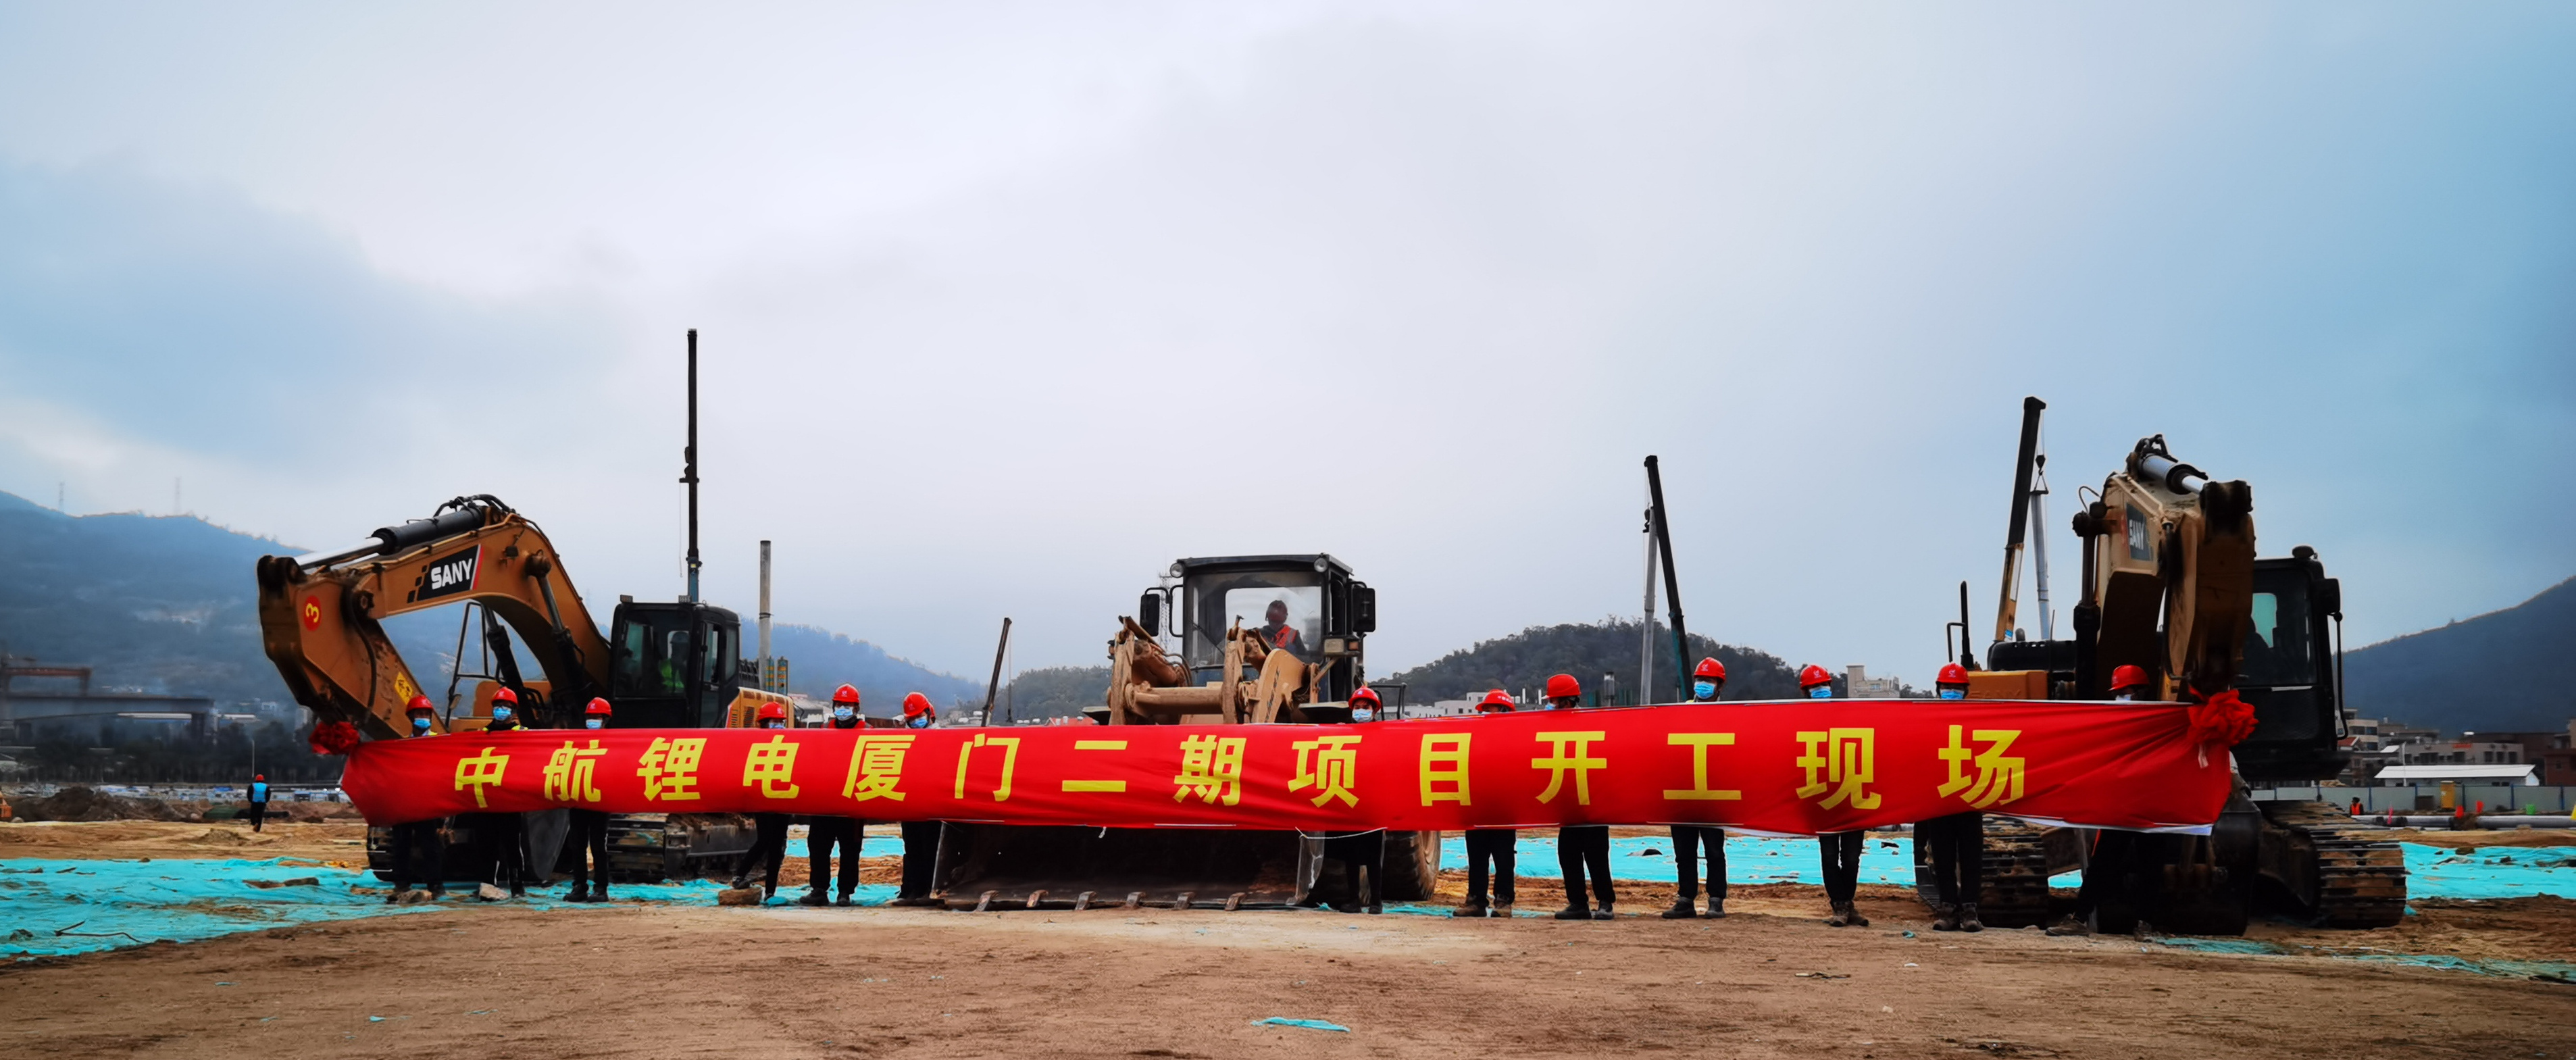 Big news! CALB Xiamen Phase II Project officially started!